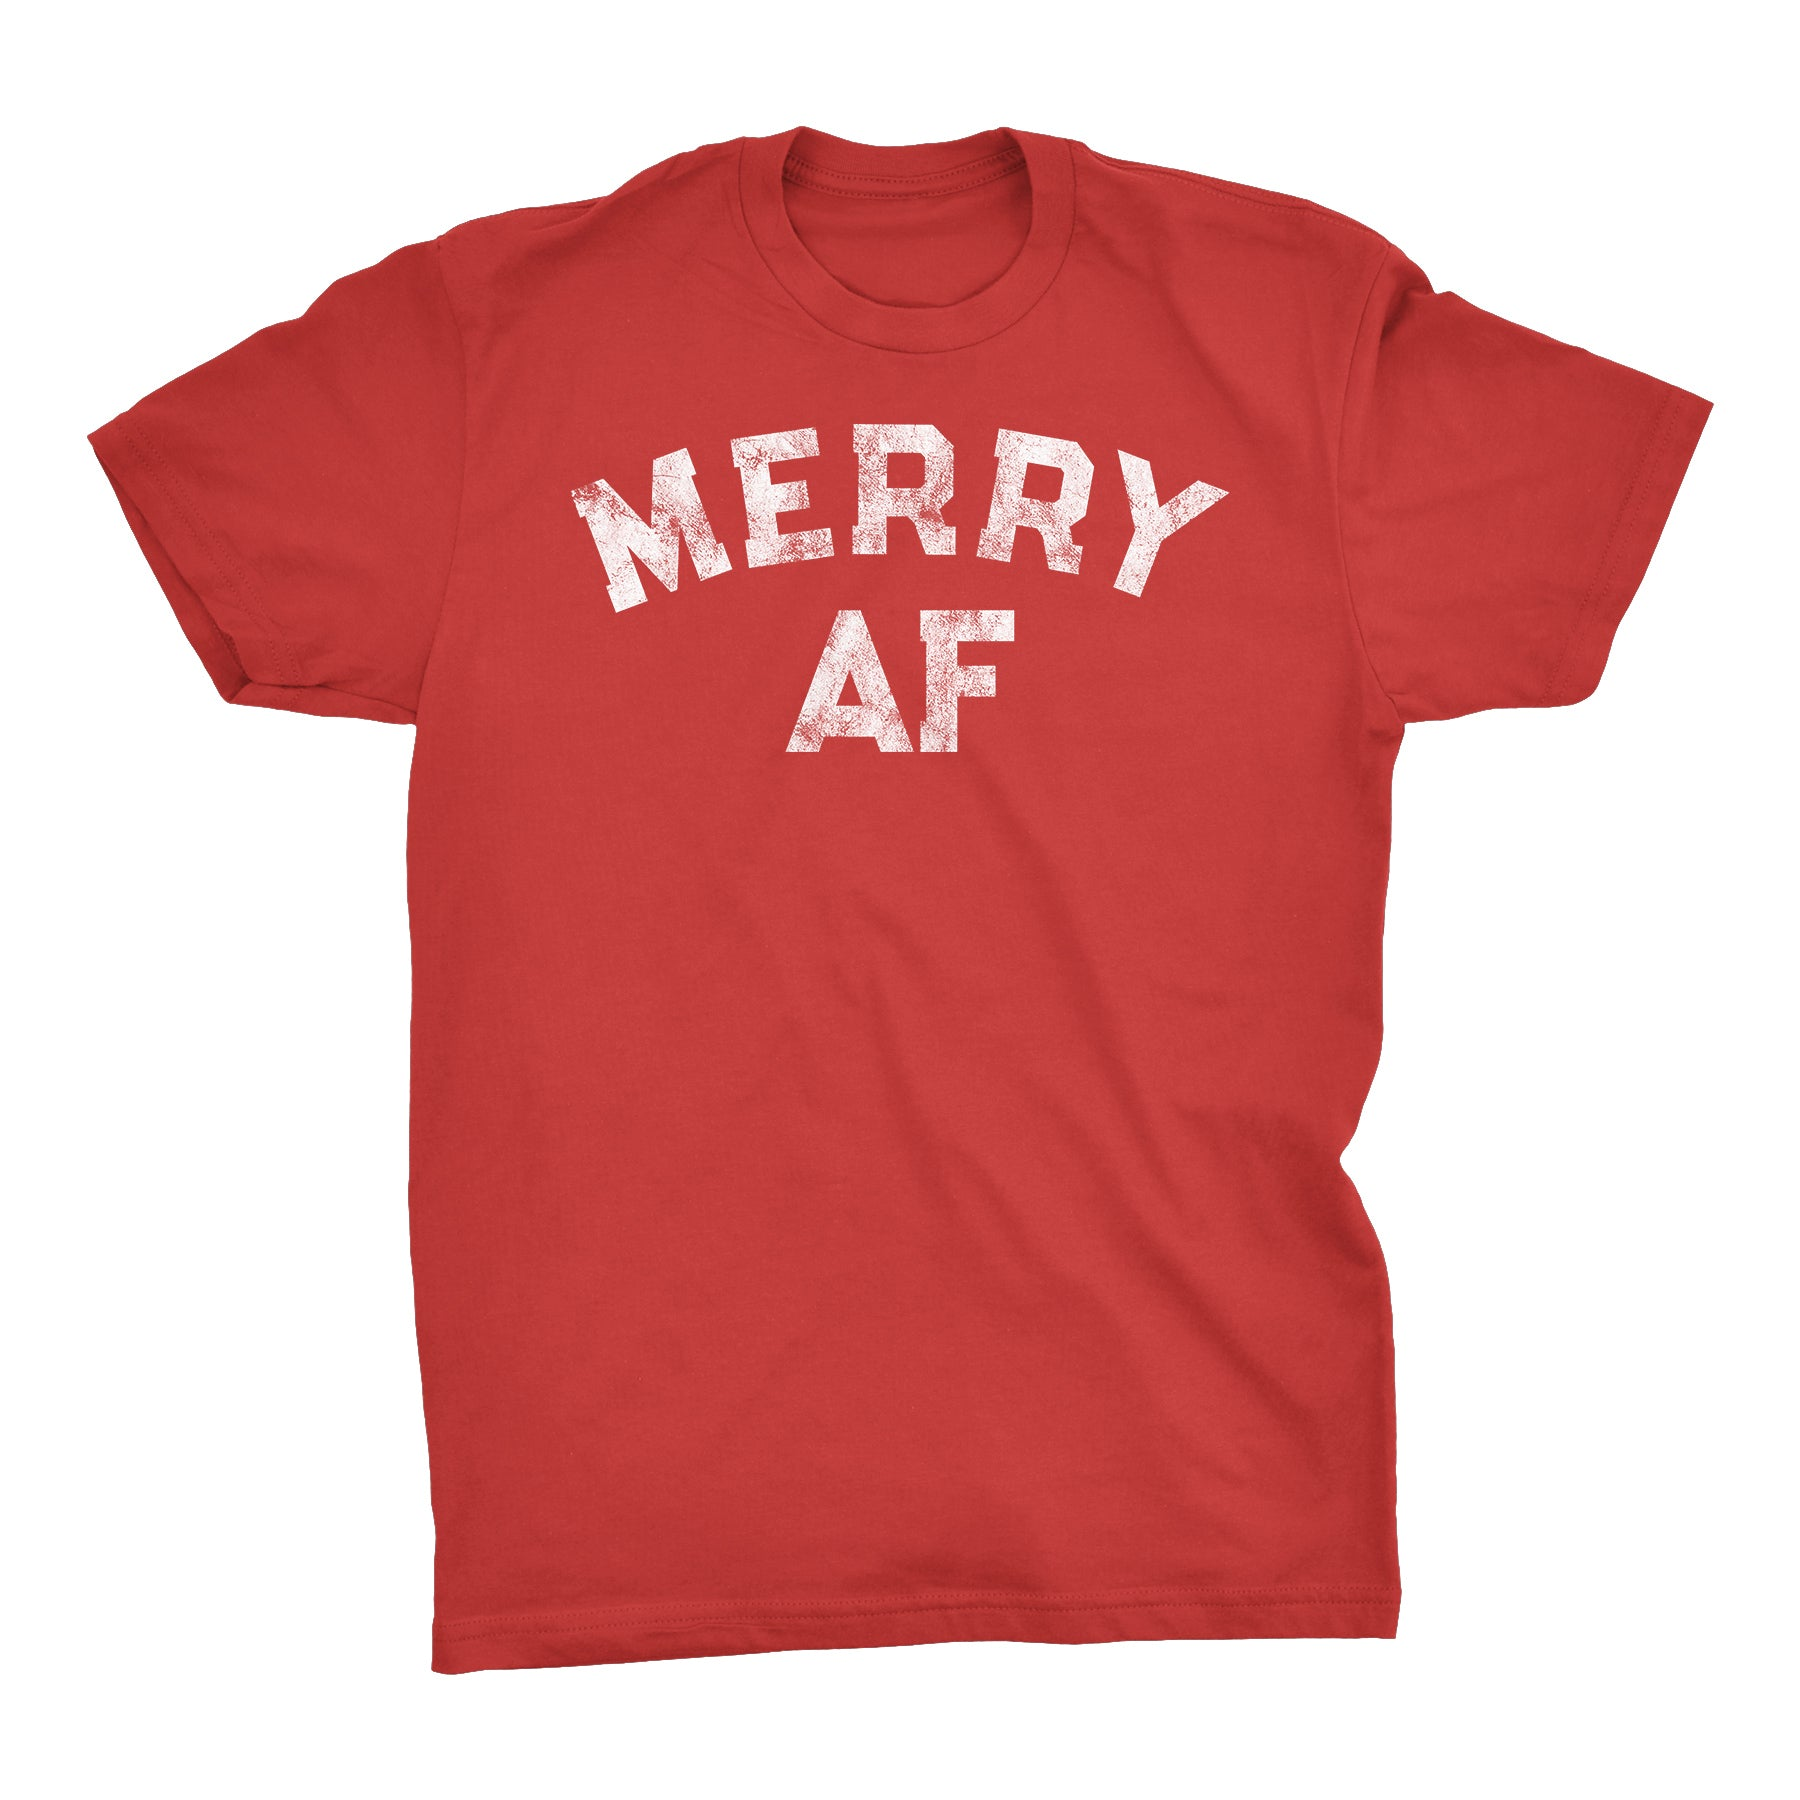 Merry AF 002 - Christmas T-shirt